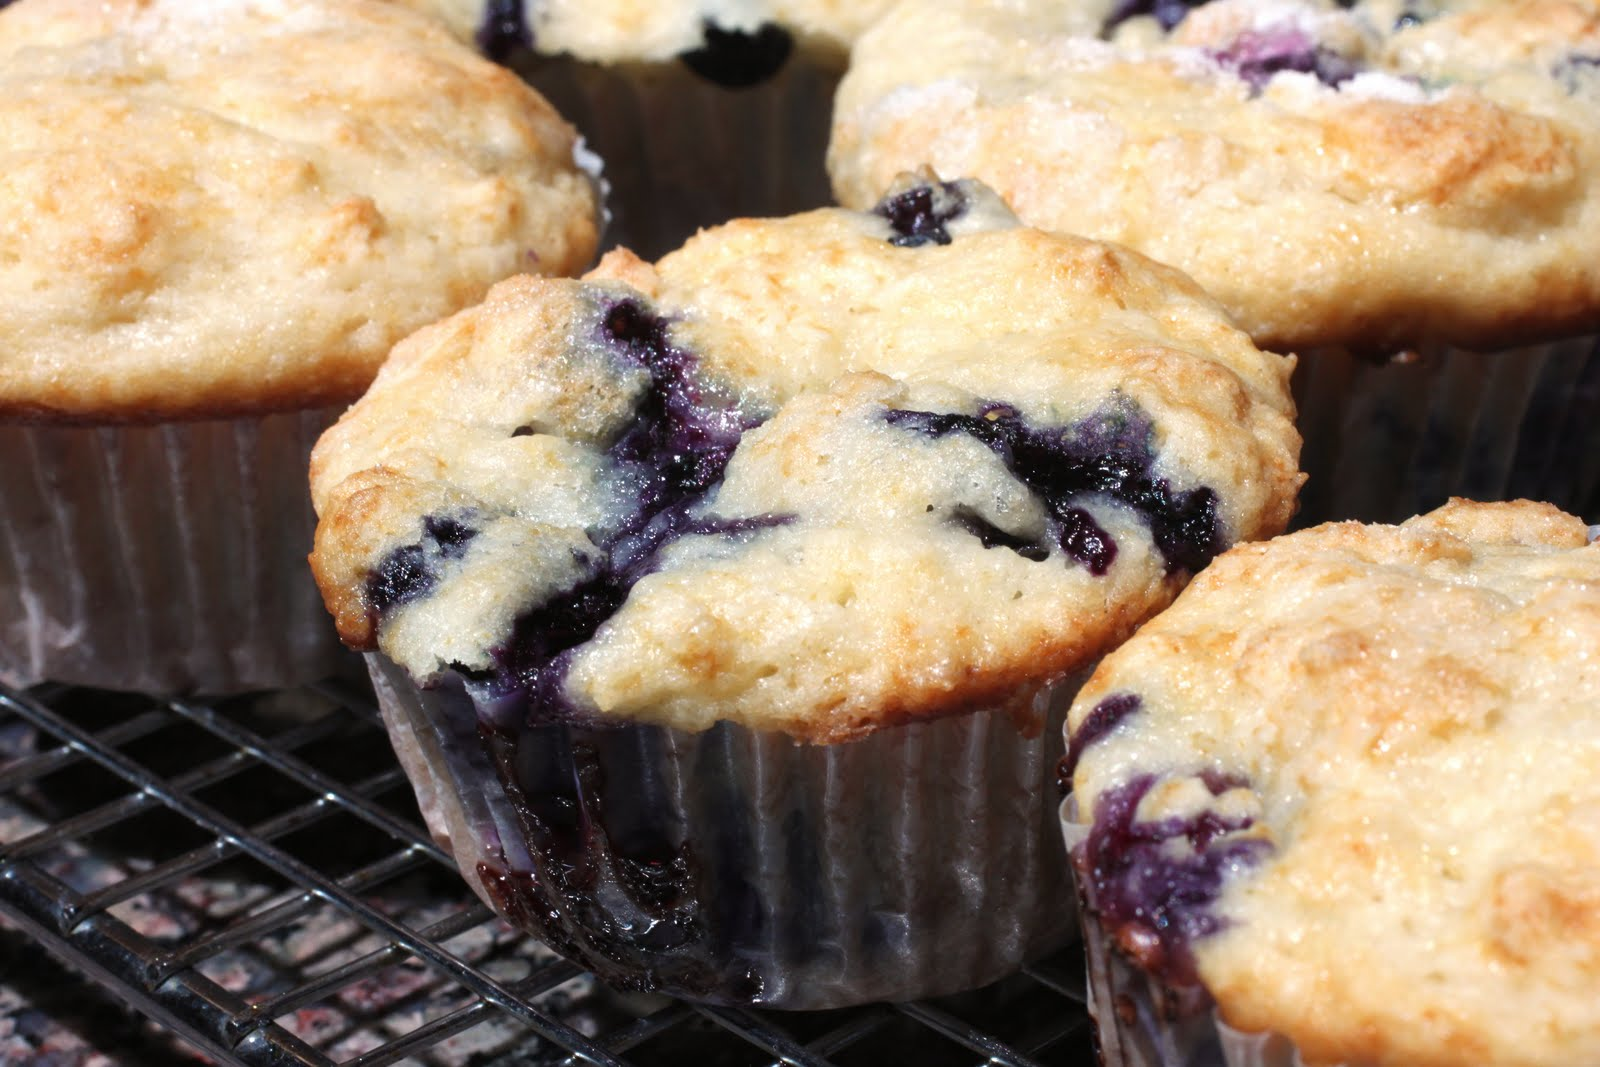 pulled it out this weekend to make some blueberry muffins